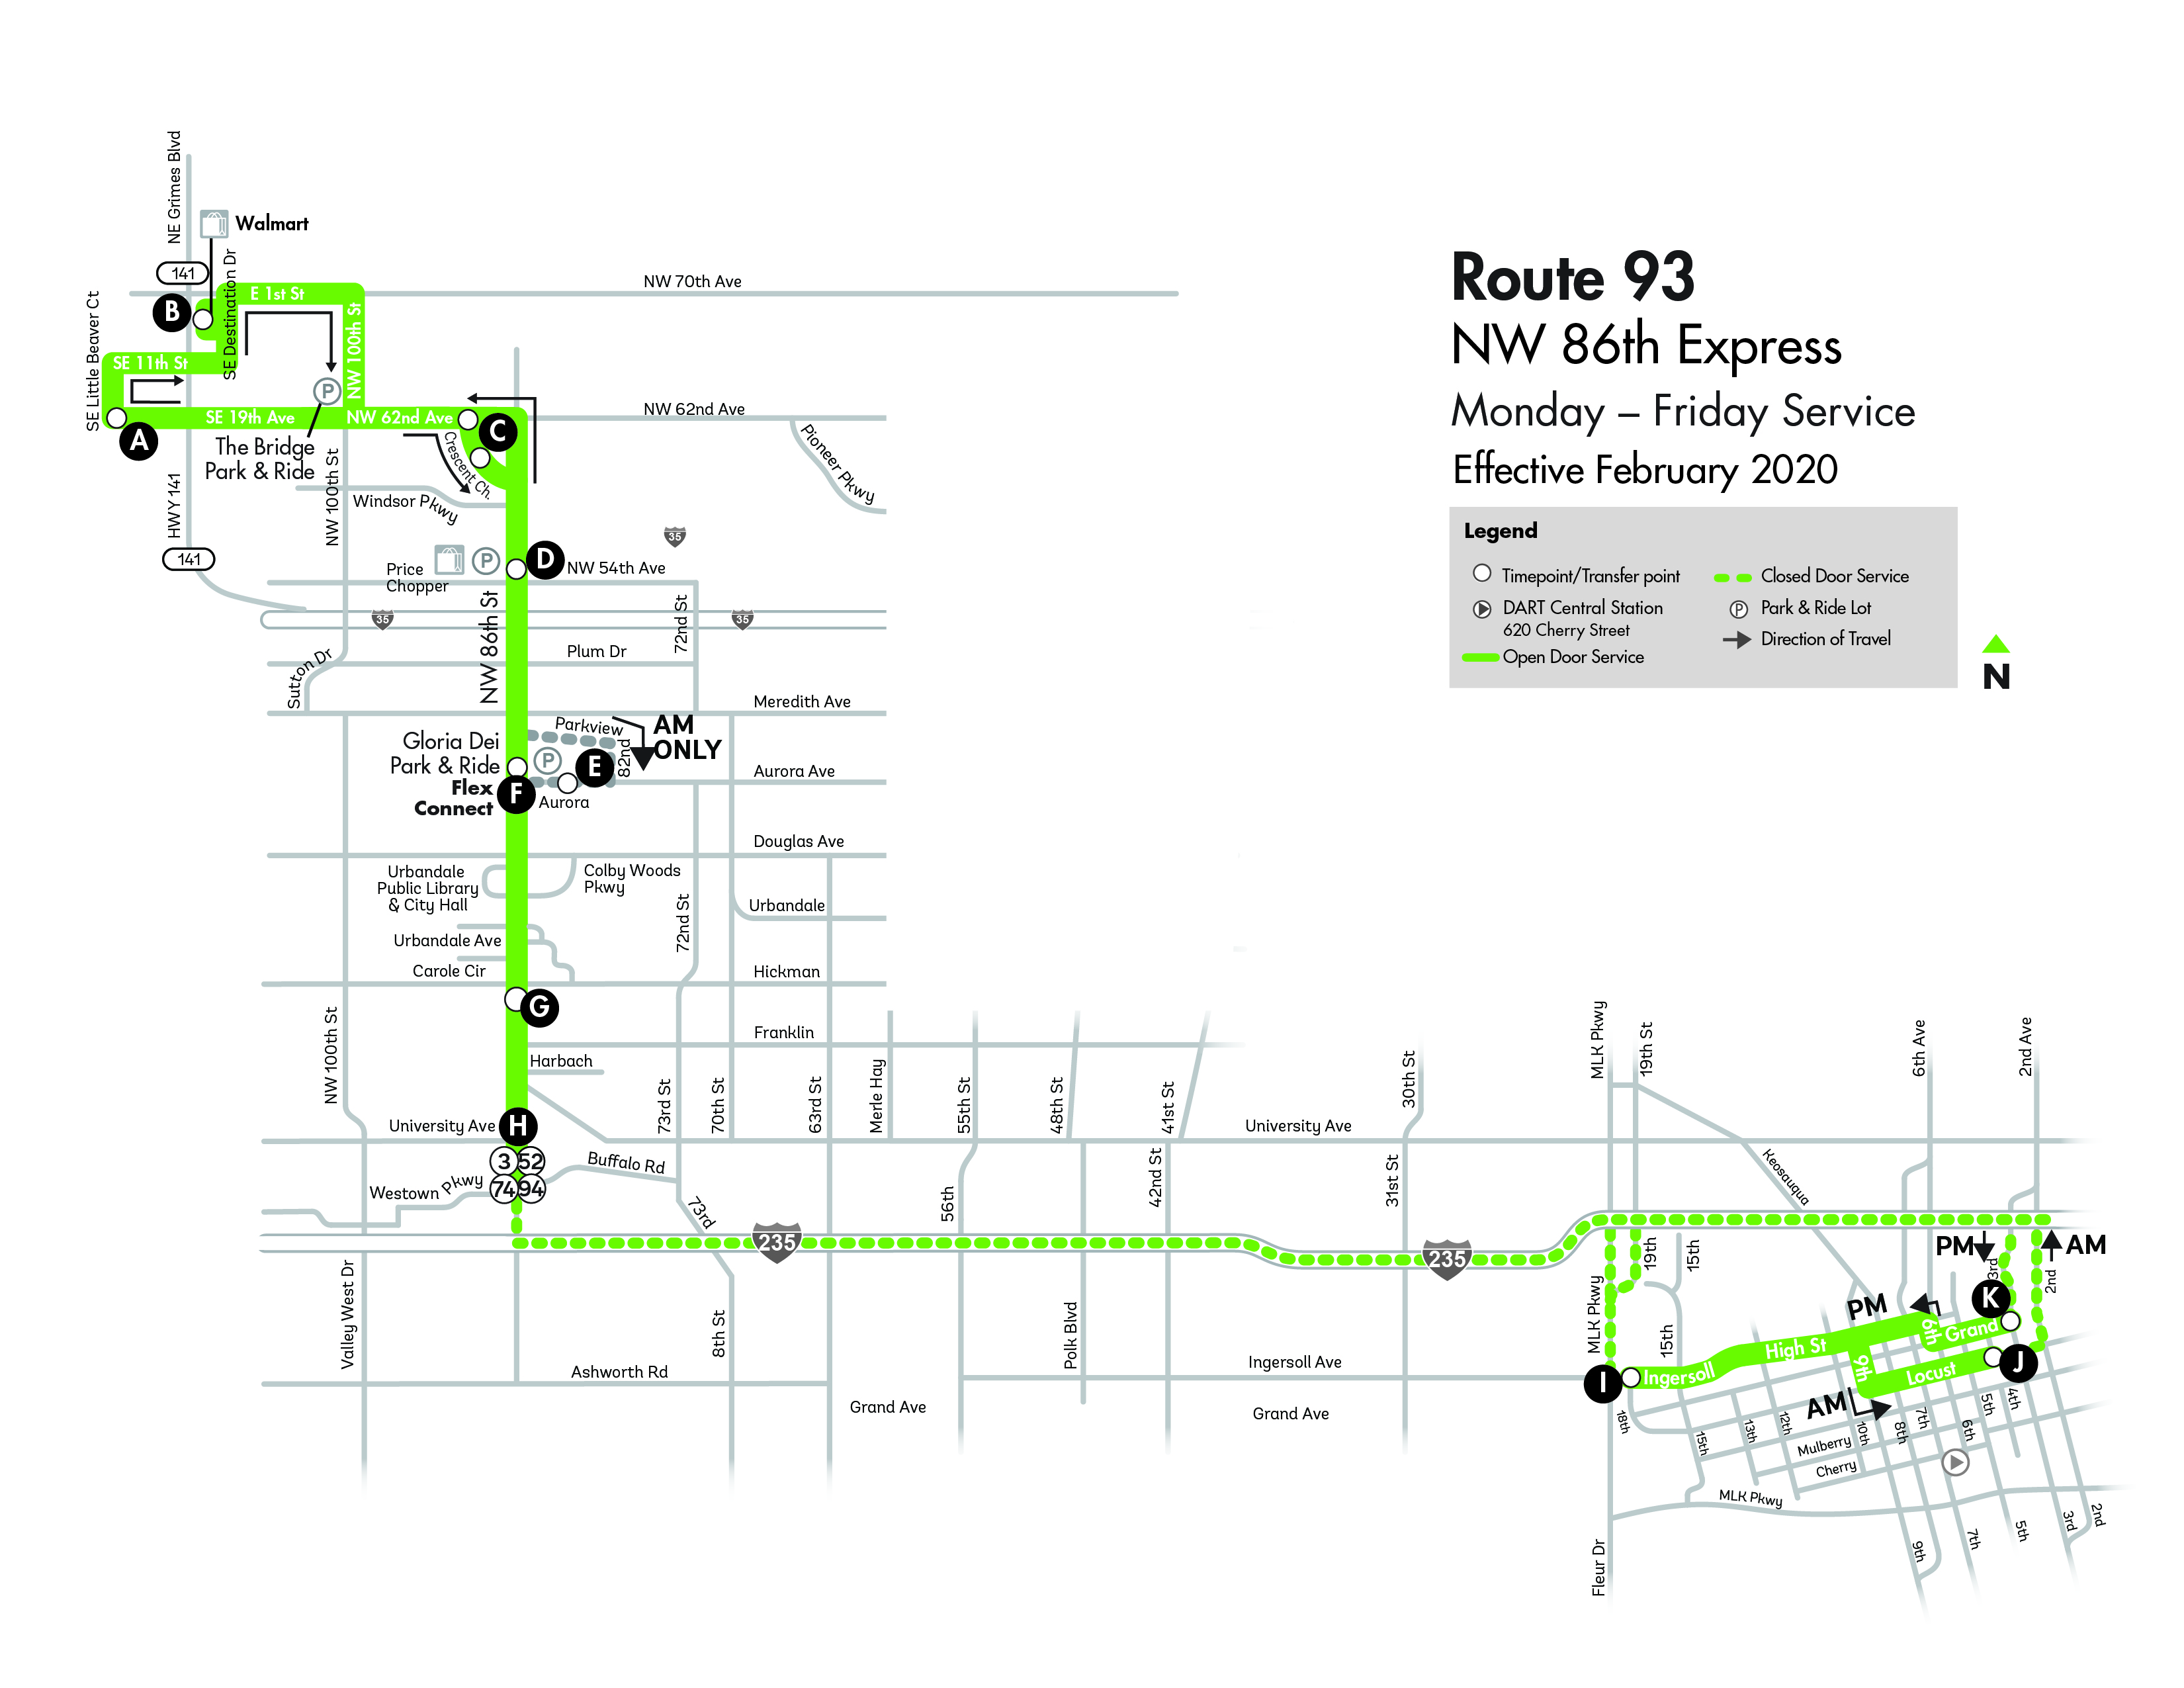 DART Express Route 93 - NW 86th Express Map